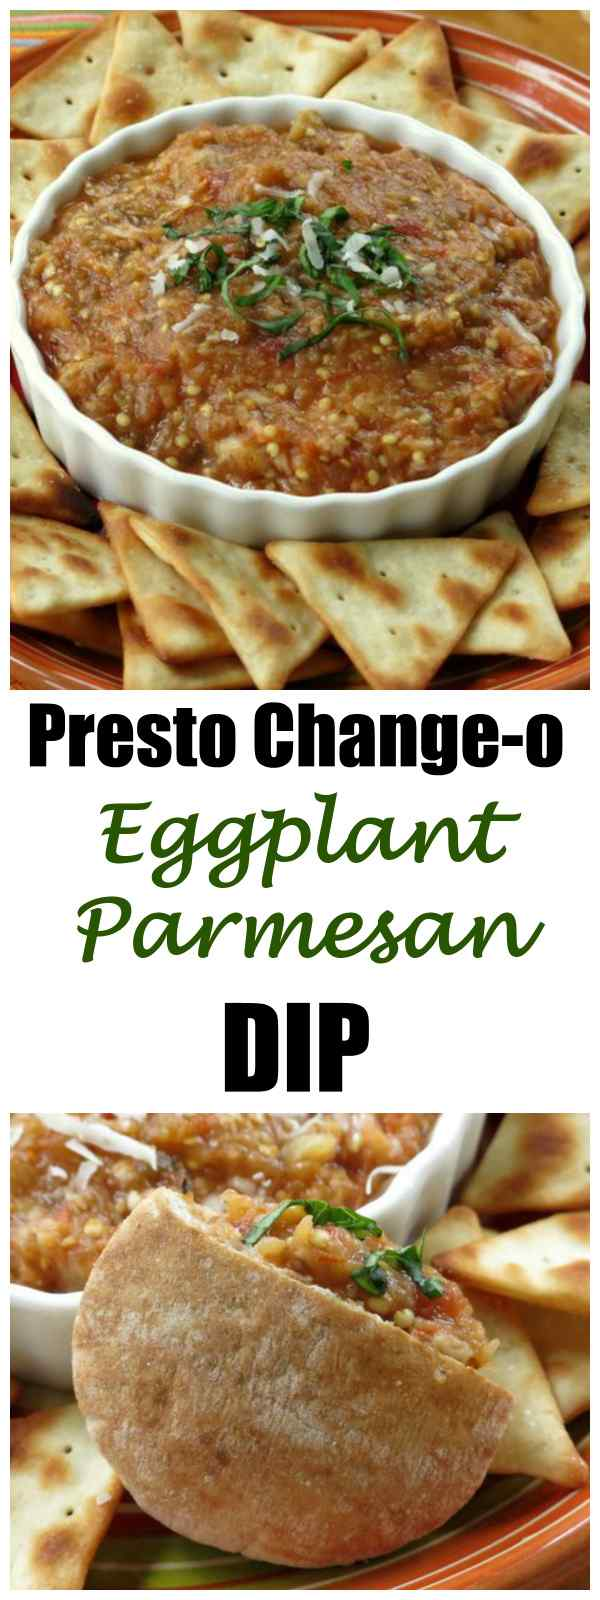 Easy Roasted Eggplant Parmesan Dip Recipe